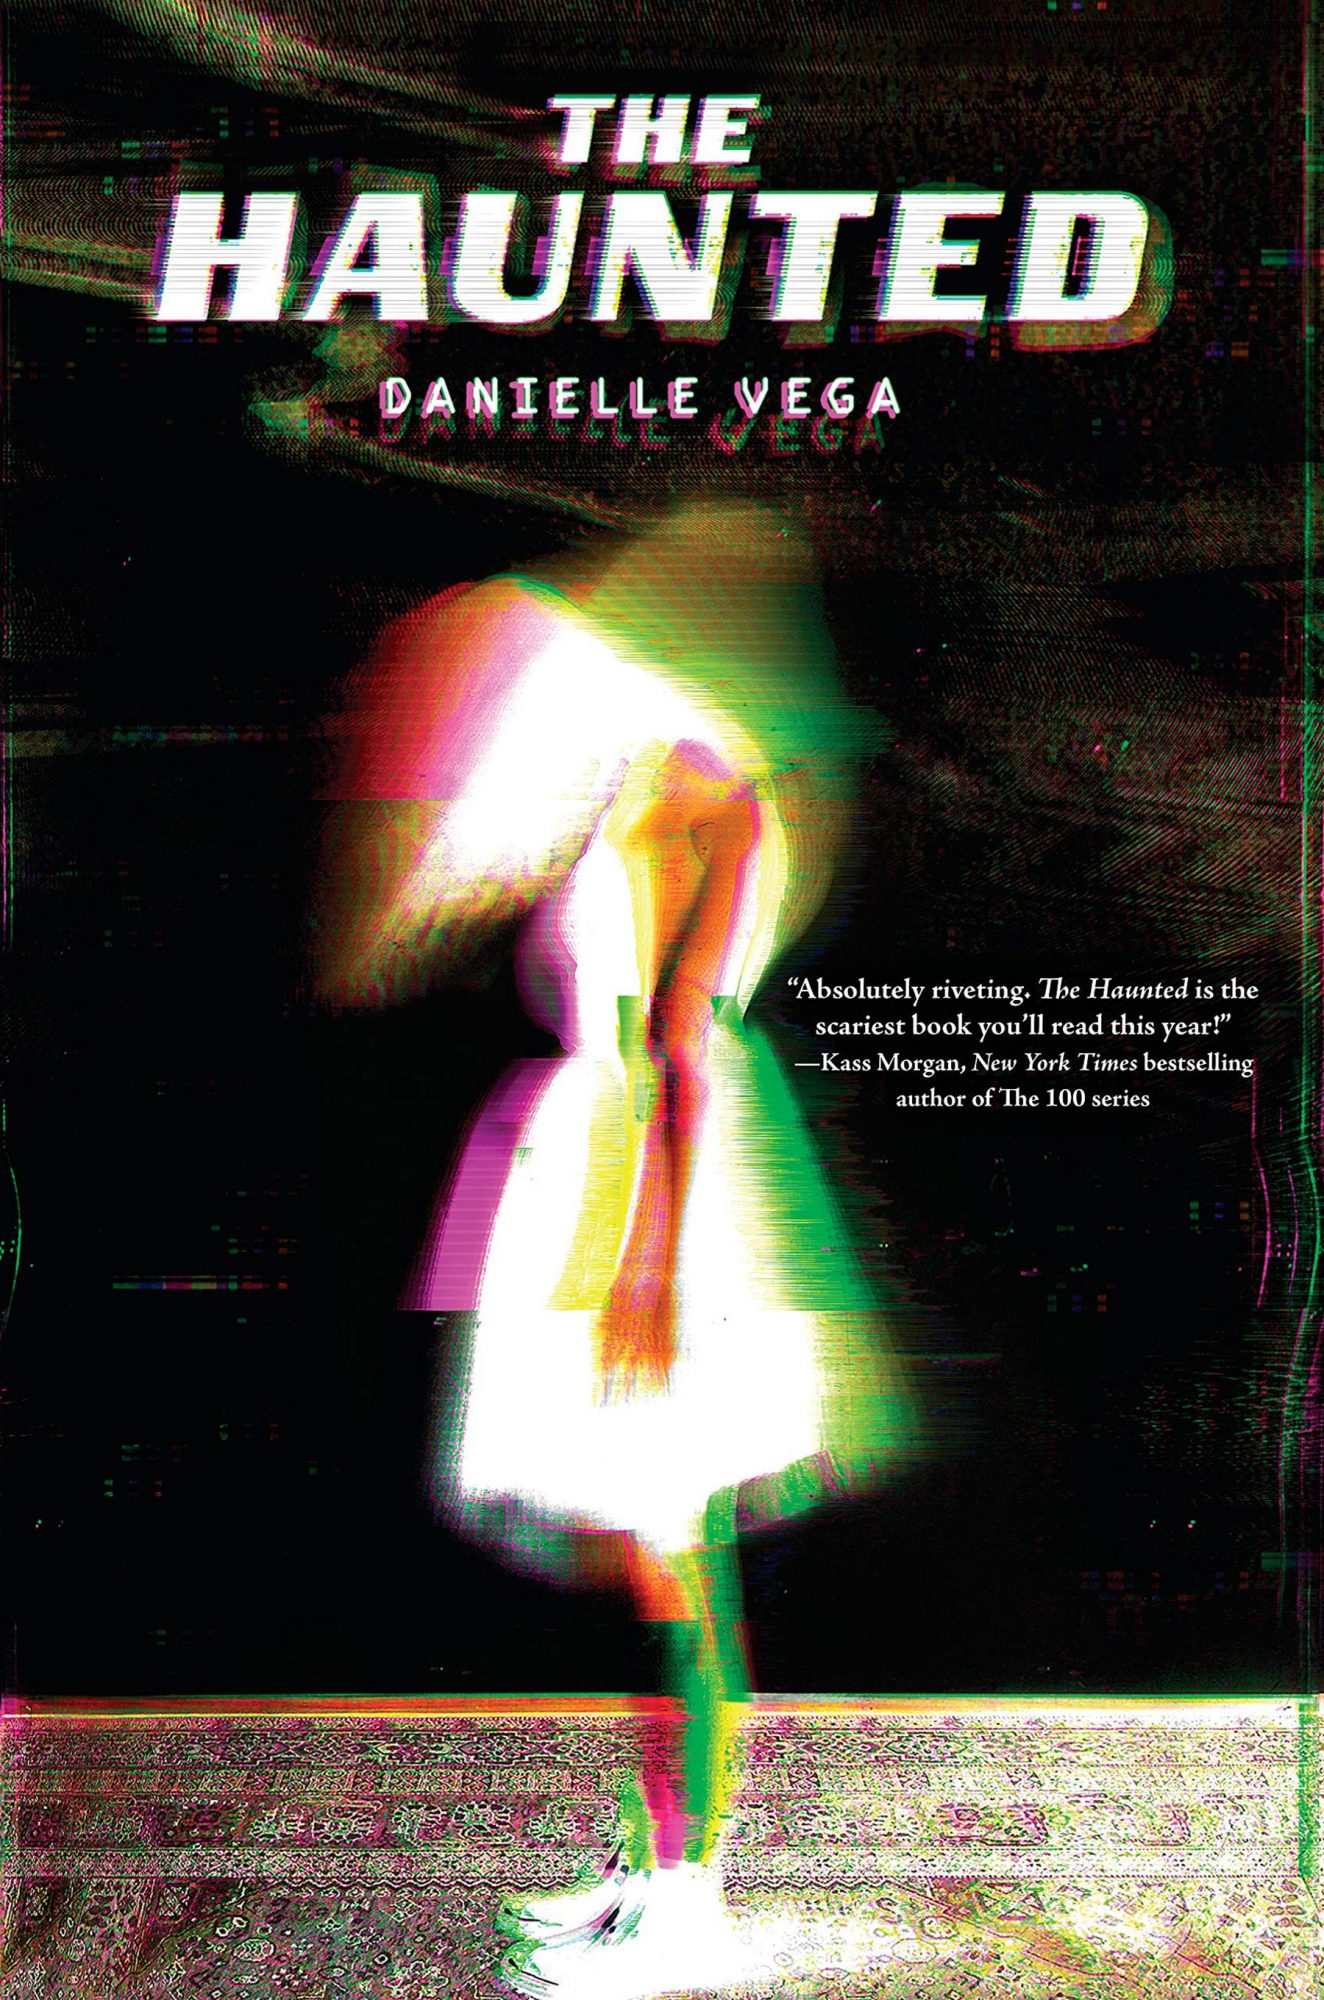 The Haunted, by Danielle Vega